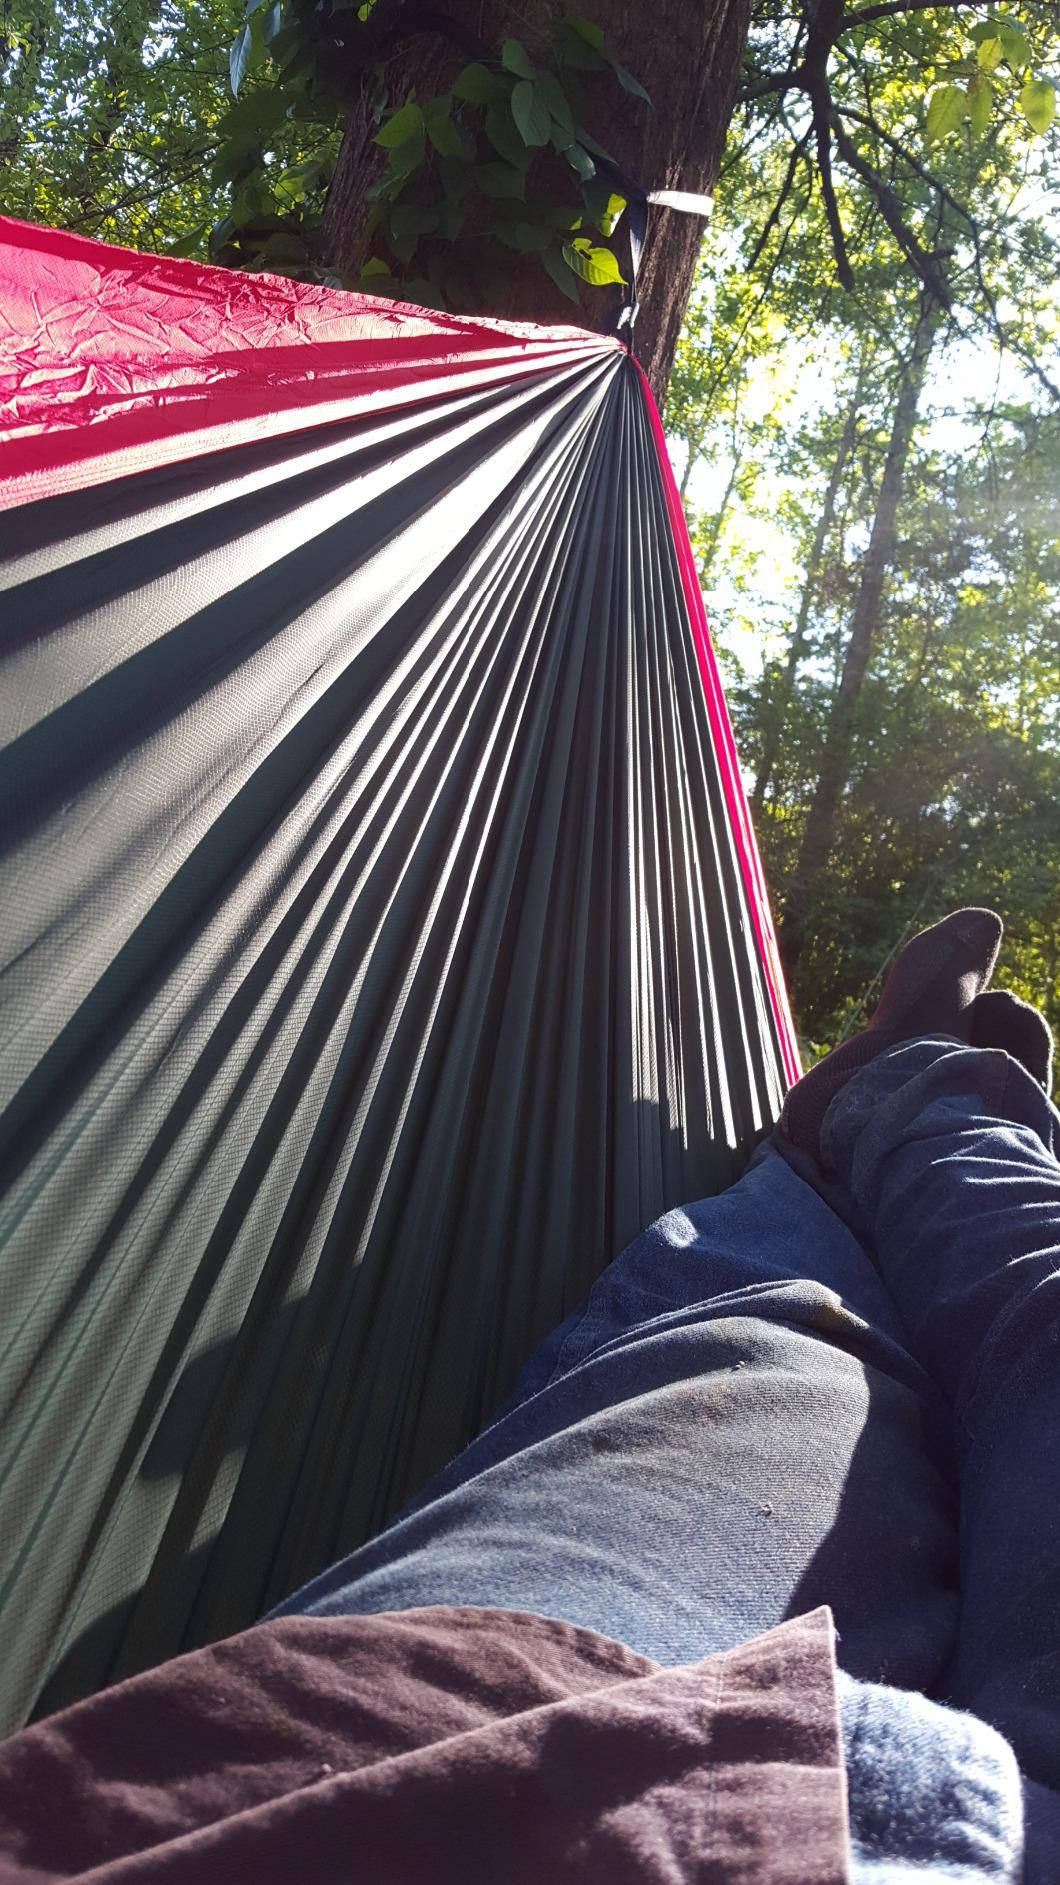 amazon    shawn sparks u0027 review of chill gorilla pro luxury double hammock wi amazon    shawn sparks u0027 review of chill gorilla pro luxury      rh   pinterest